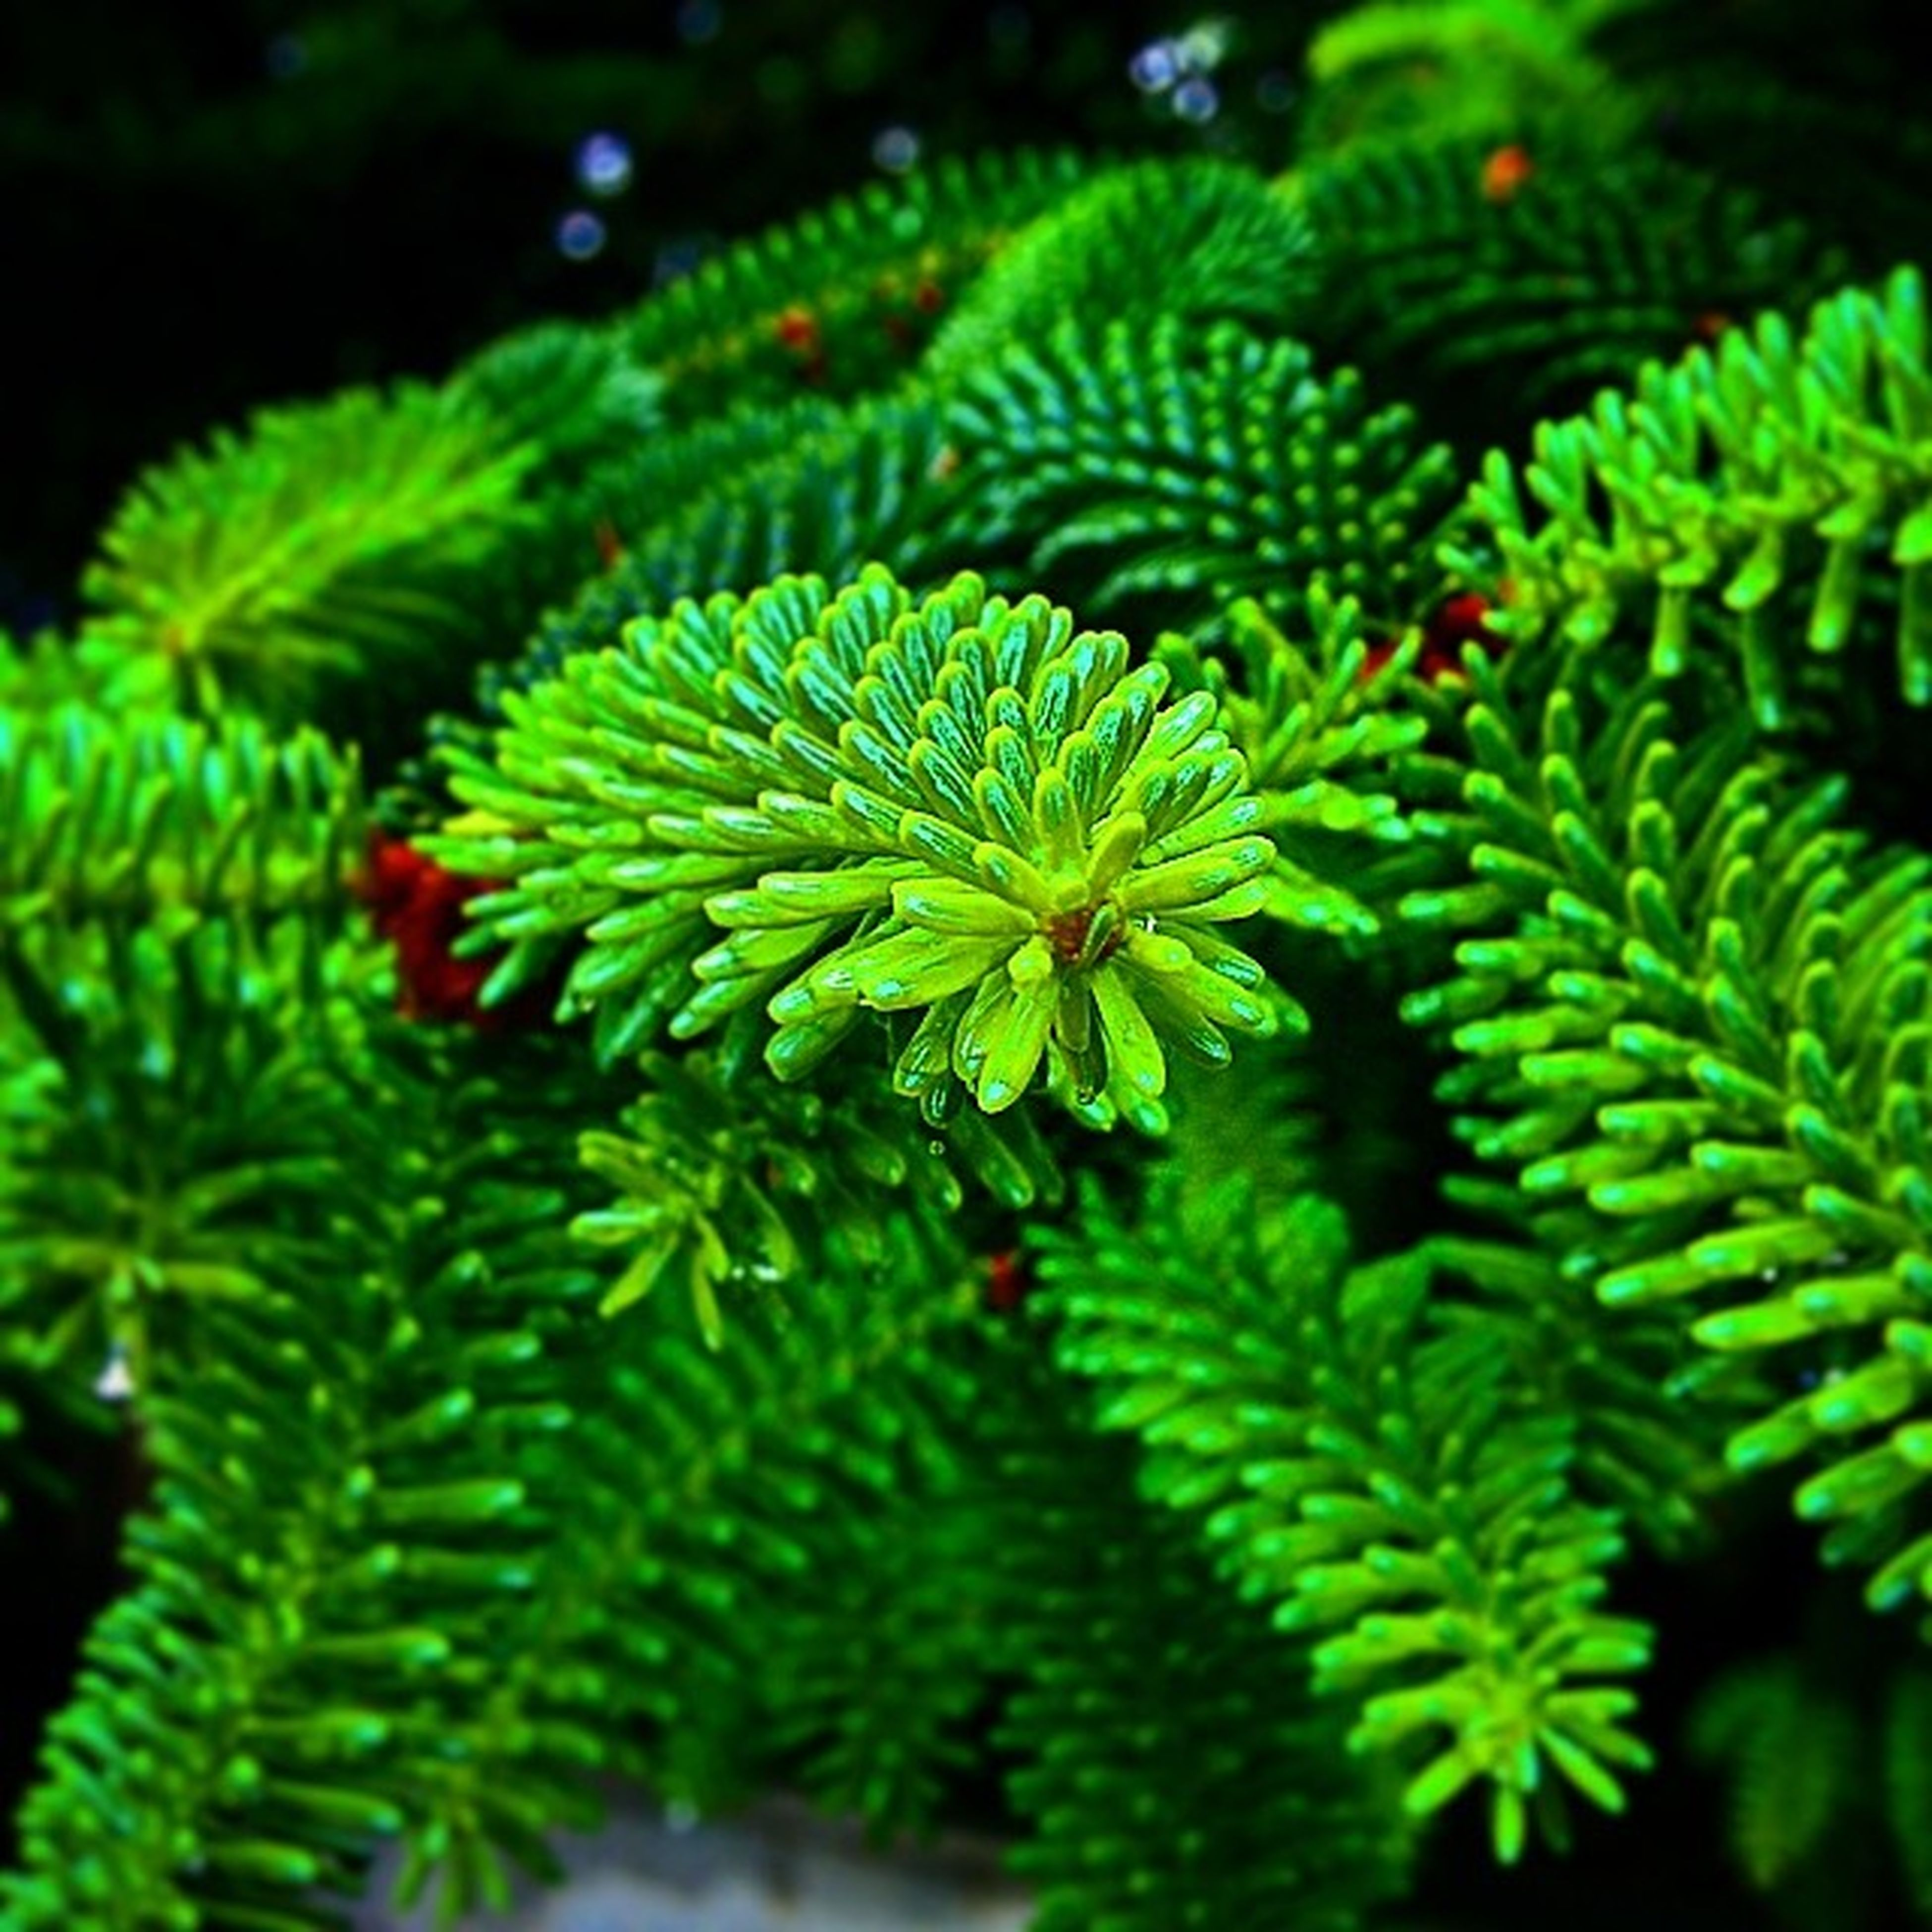 green color, growth, leaf, plant, nature, close-up, beauty in nature, freshness, green, selective focus, focus on foreground, growing, tranquility, outdoors, lush foliage, no people, leaves, high angle view, fern, day